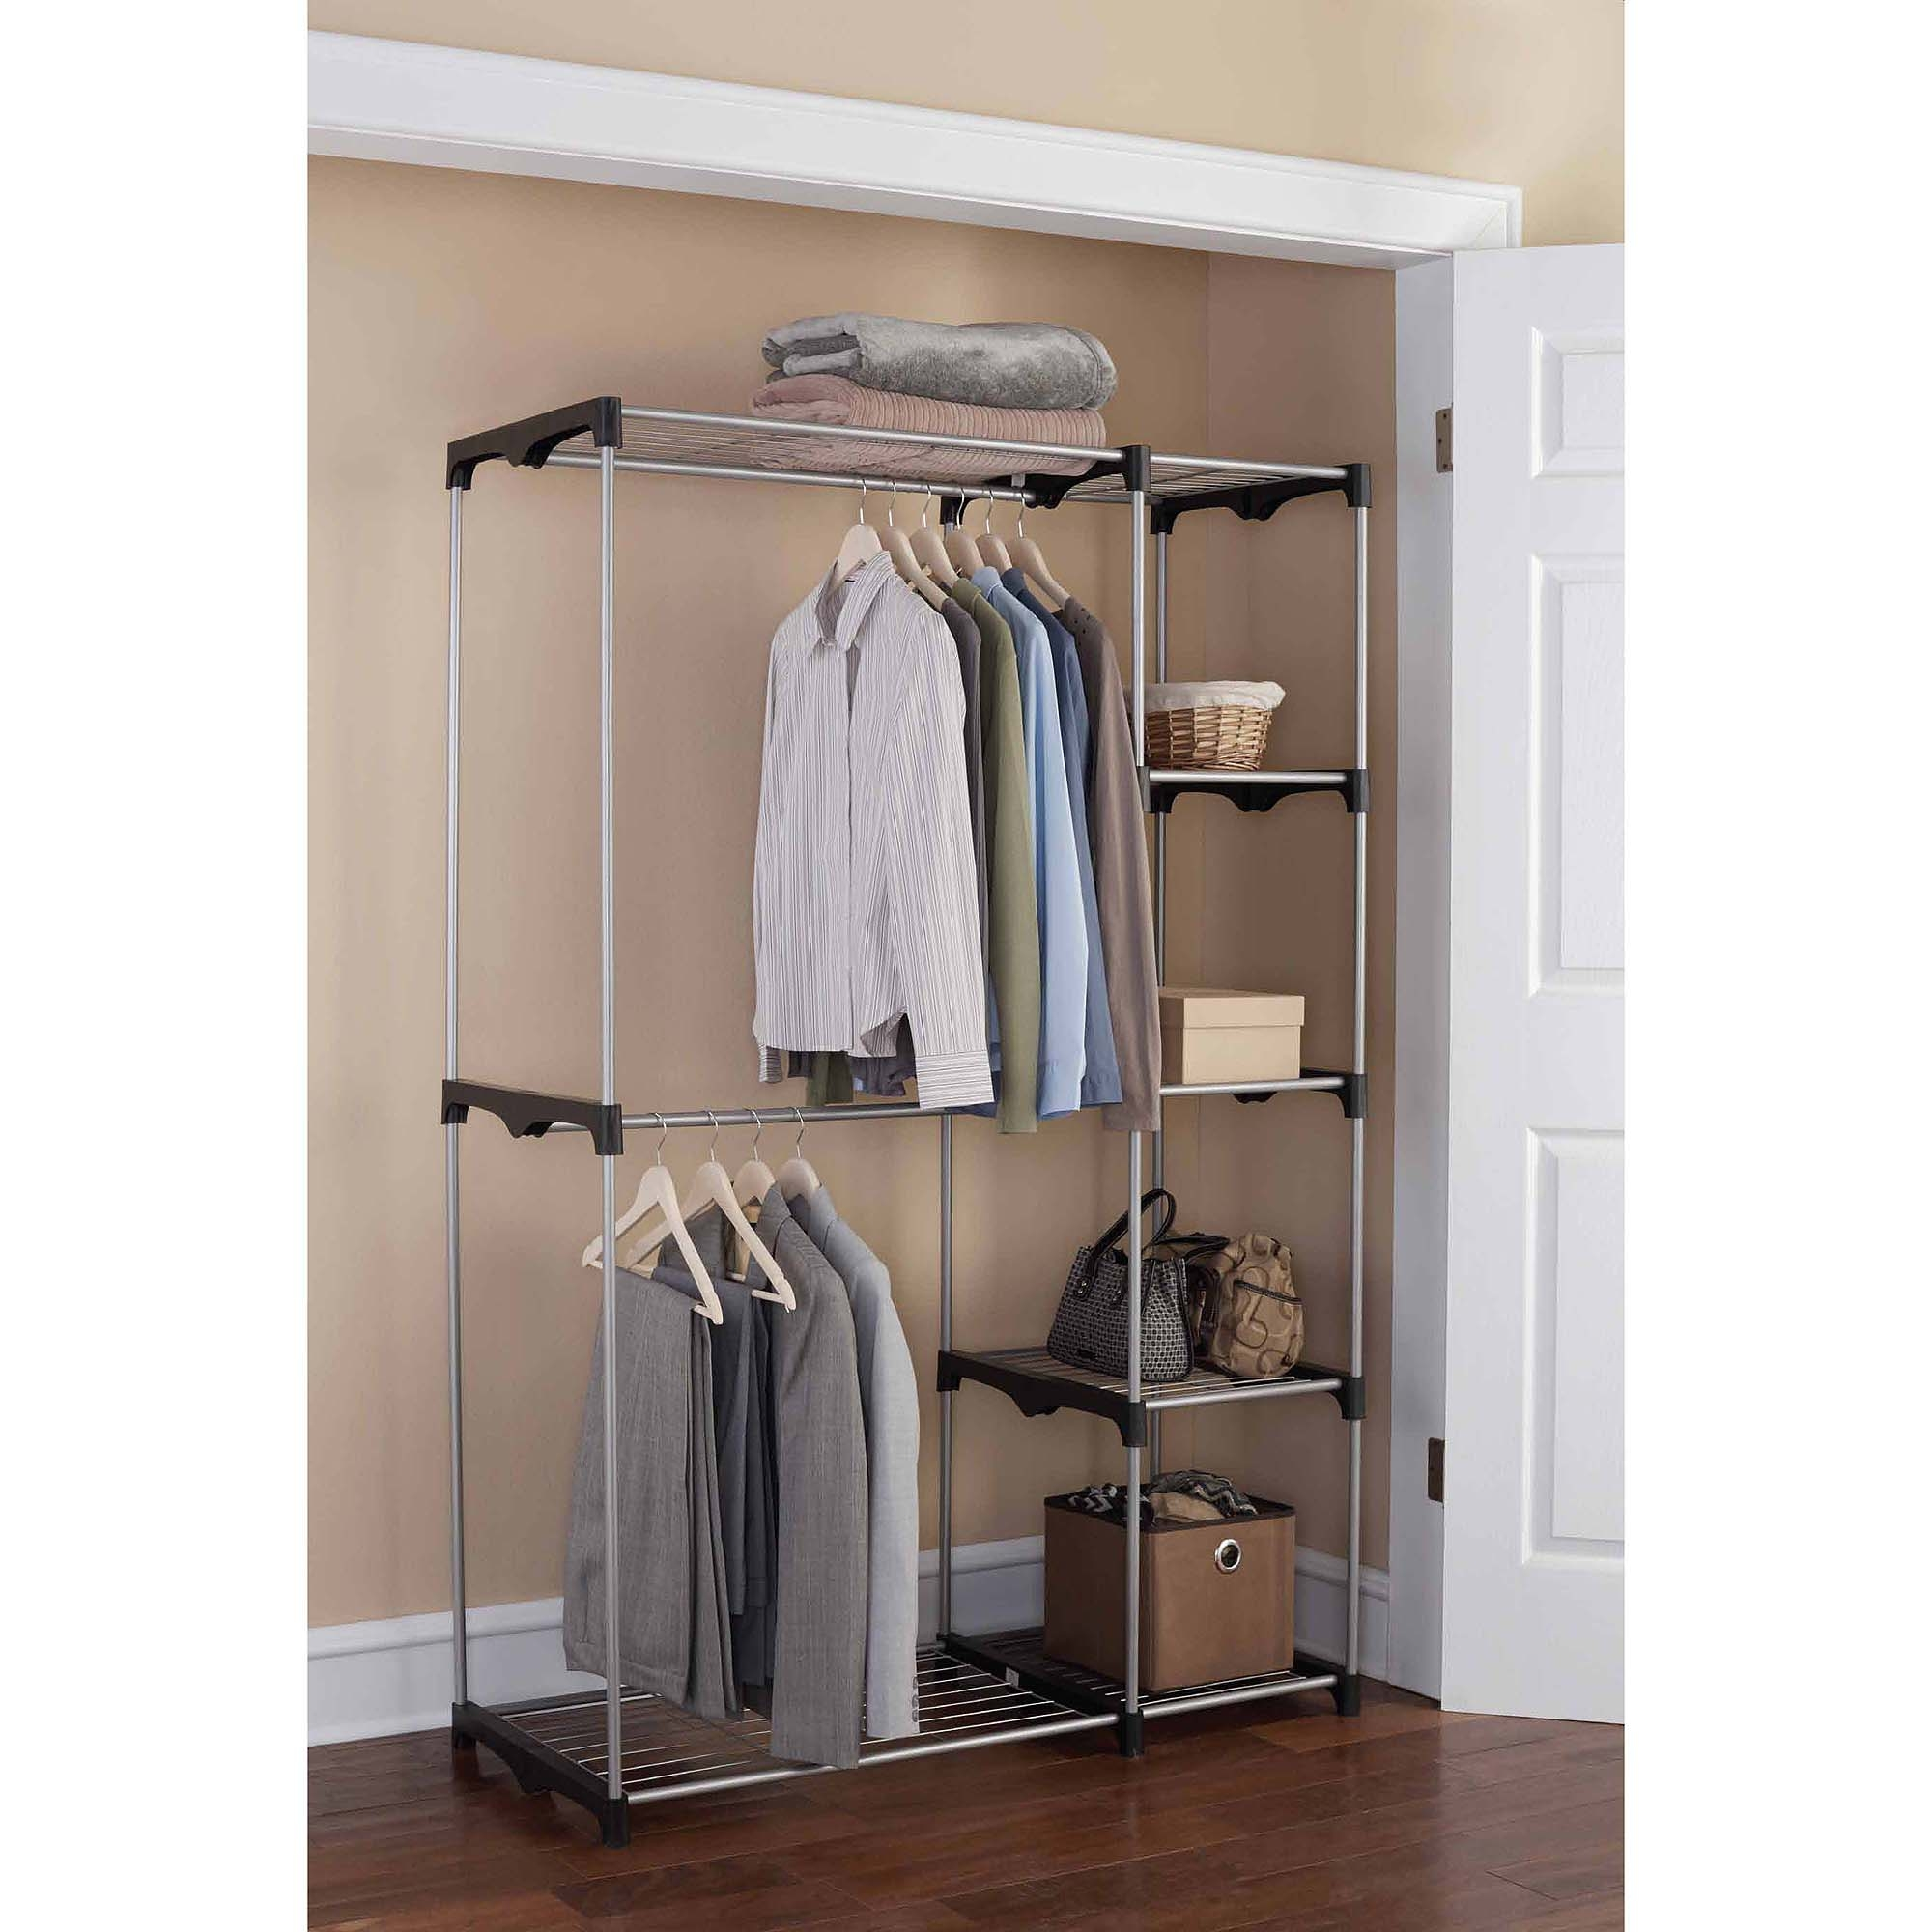 Portable Closets Regarding Mobile Wardrobe Cabinets (Image 18 of 25)